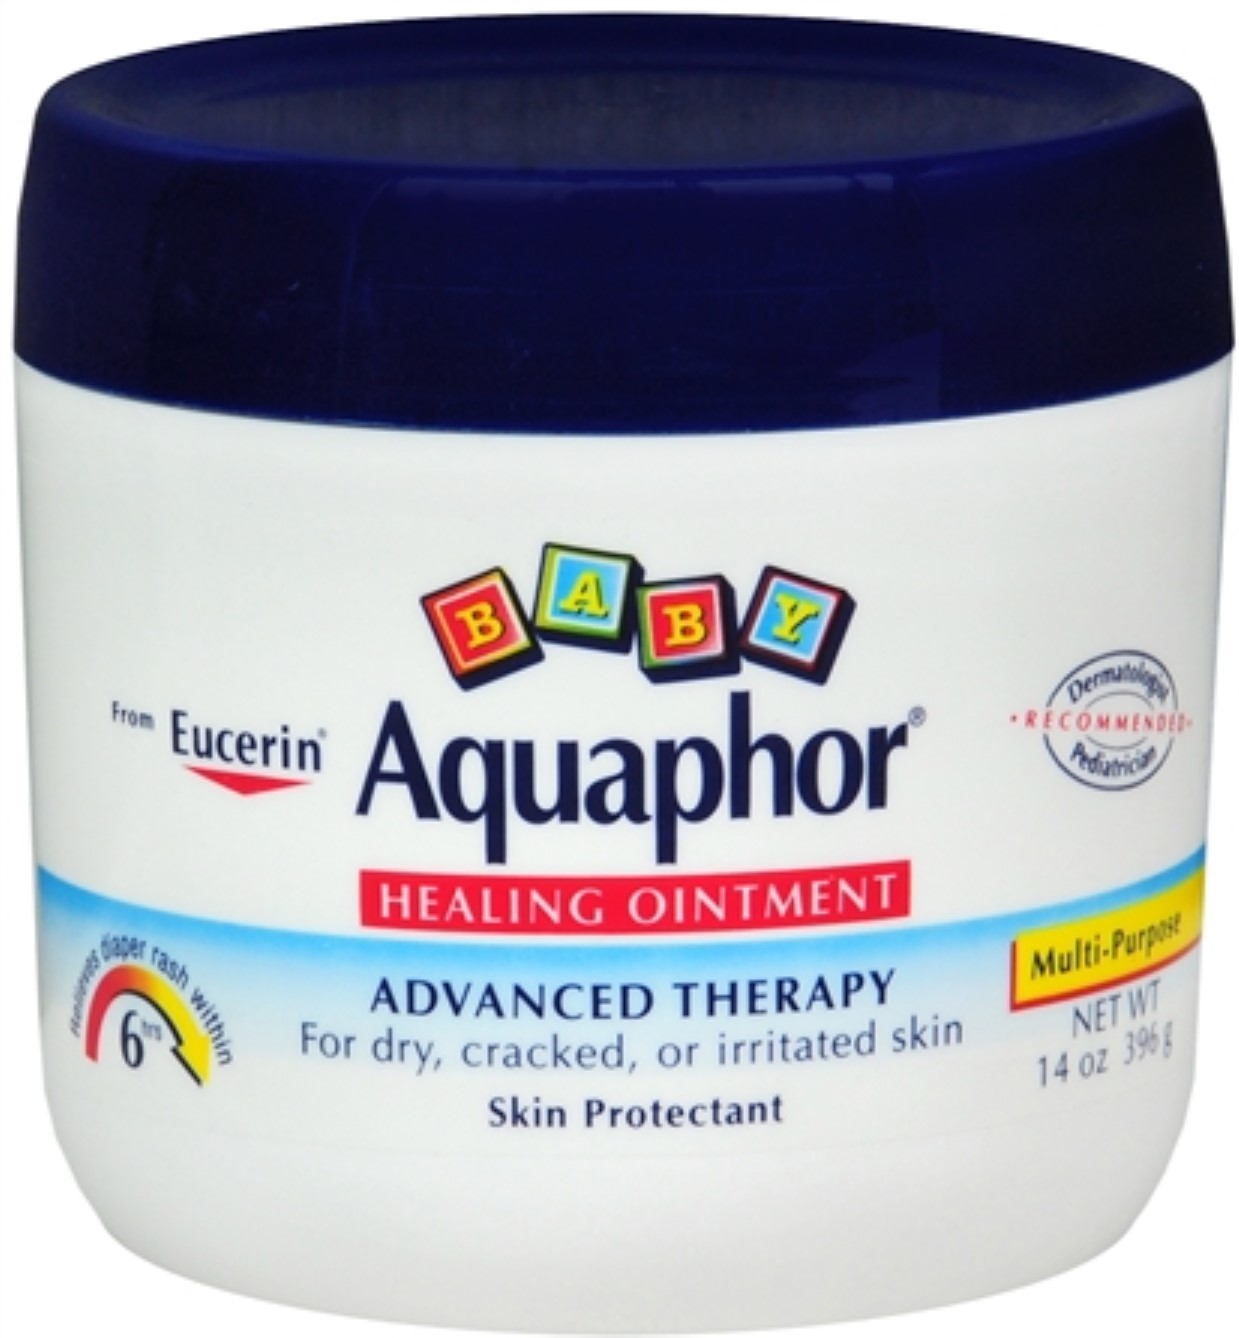 Aquaphor Baby Healing Ointment, Advanced Therapy 14 oz (Pack of 6)